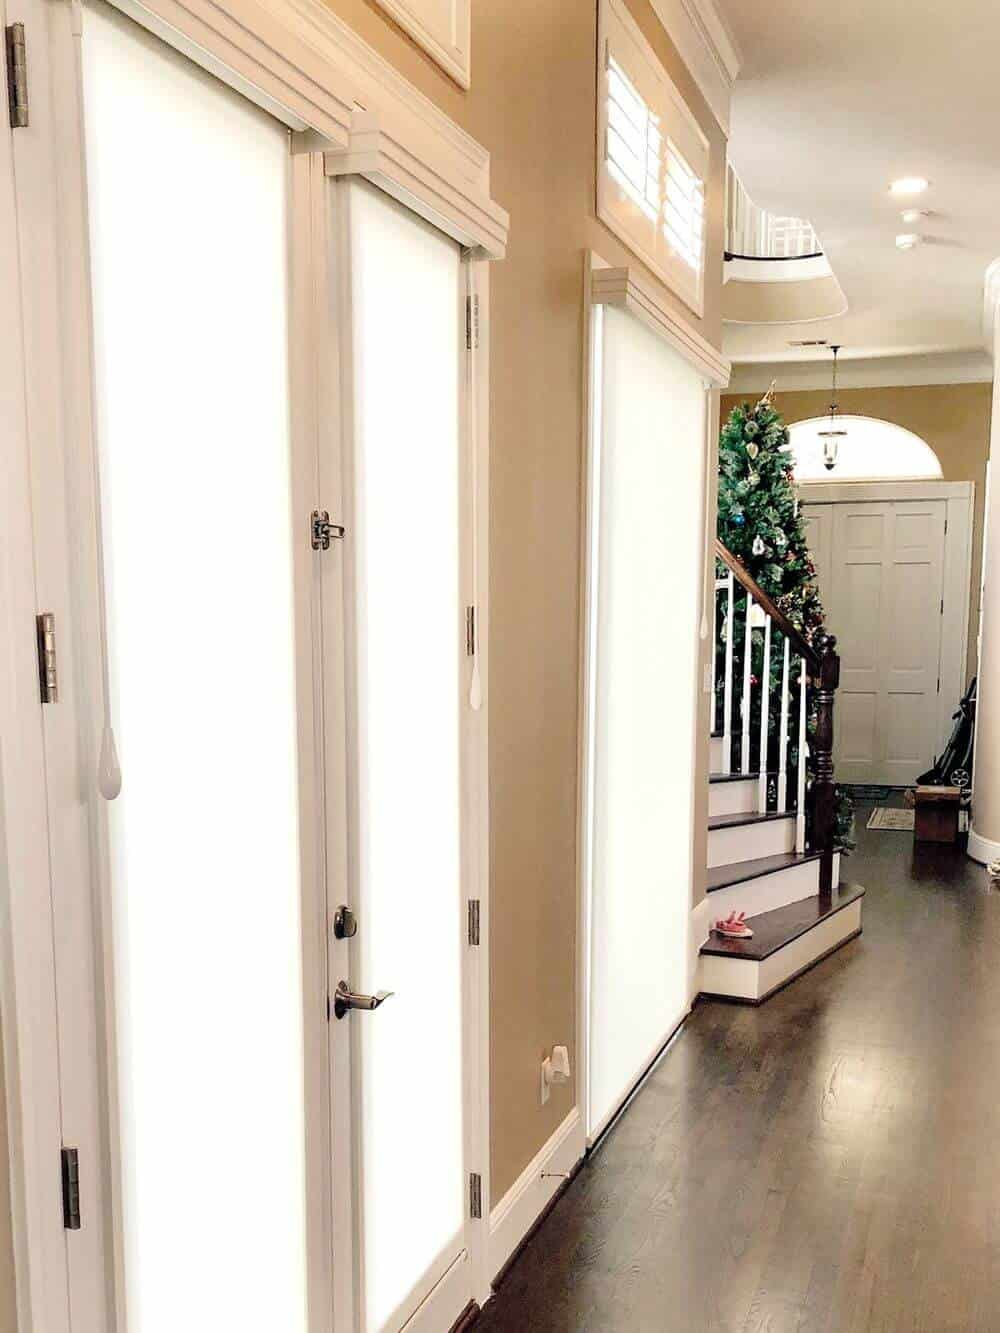 A home's entry featuring beige walls and hardwood floors, along with a tall ceiling. The staircase is set on the side, leading to the home's second floor.